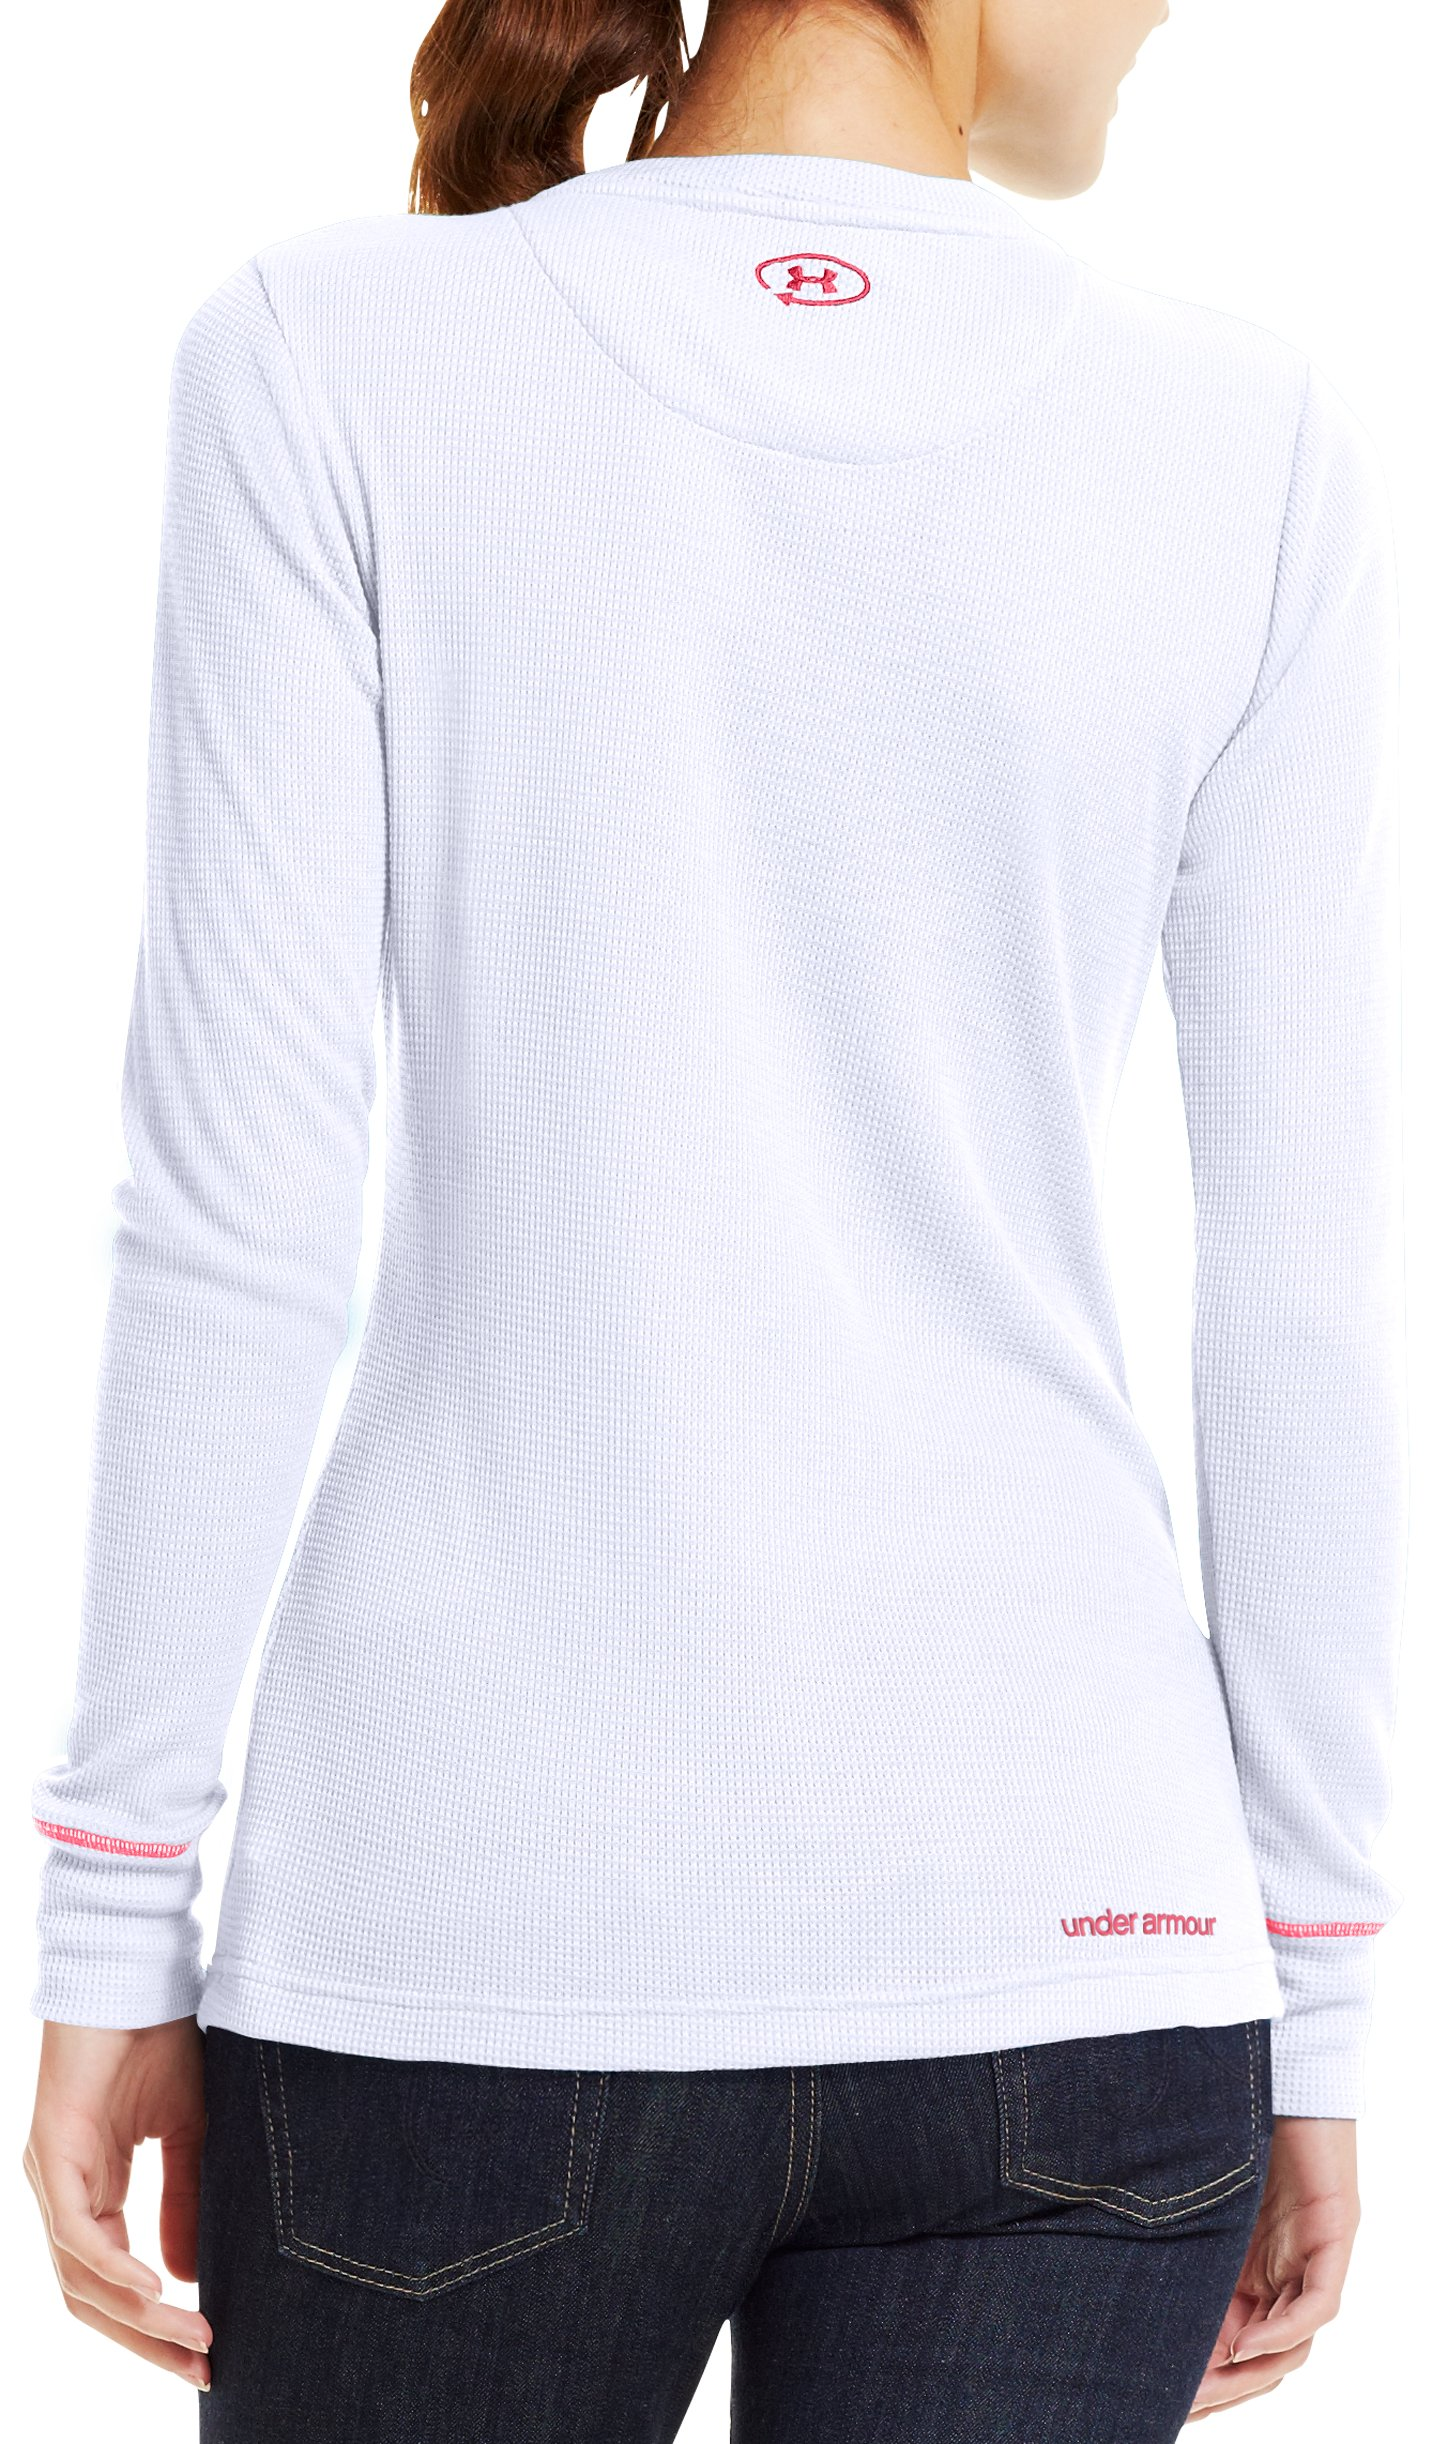 Women's Waffle Tackle Twill Long Sleeve Crew, White, Back